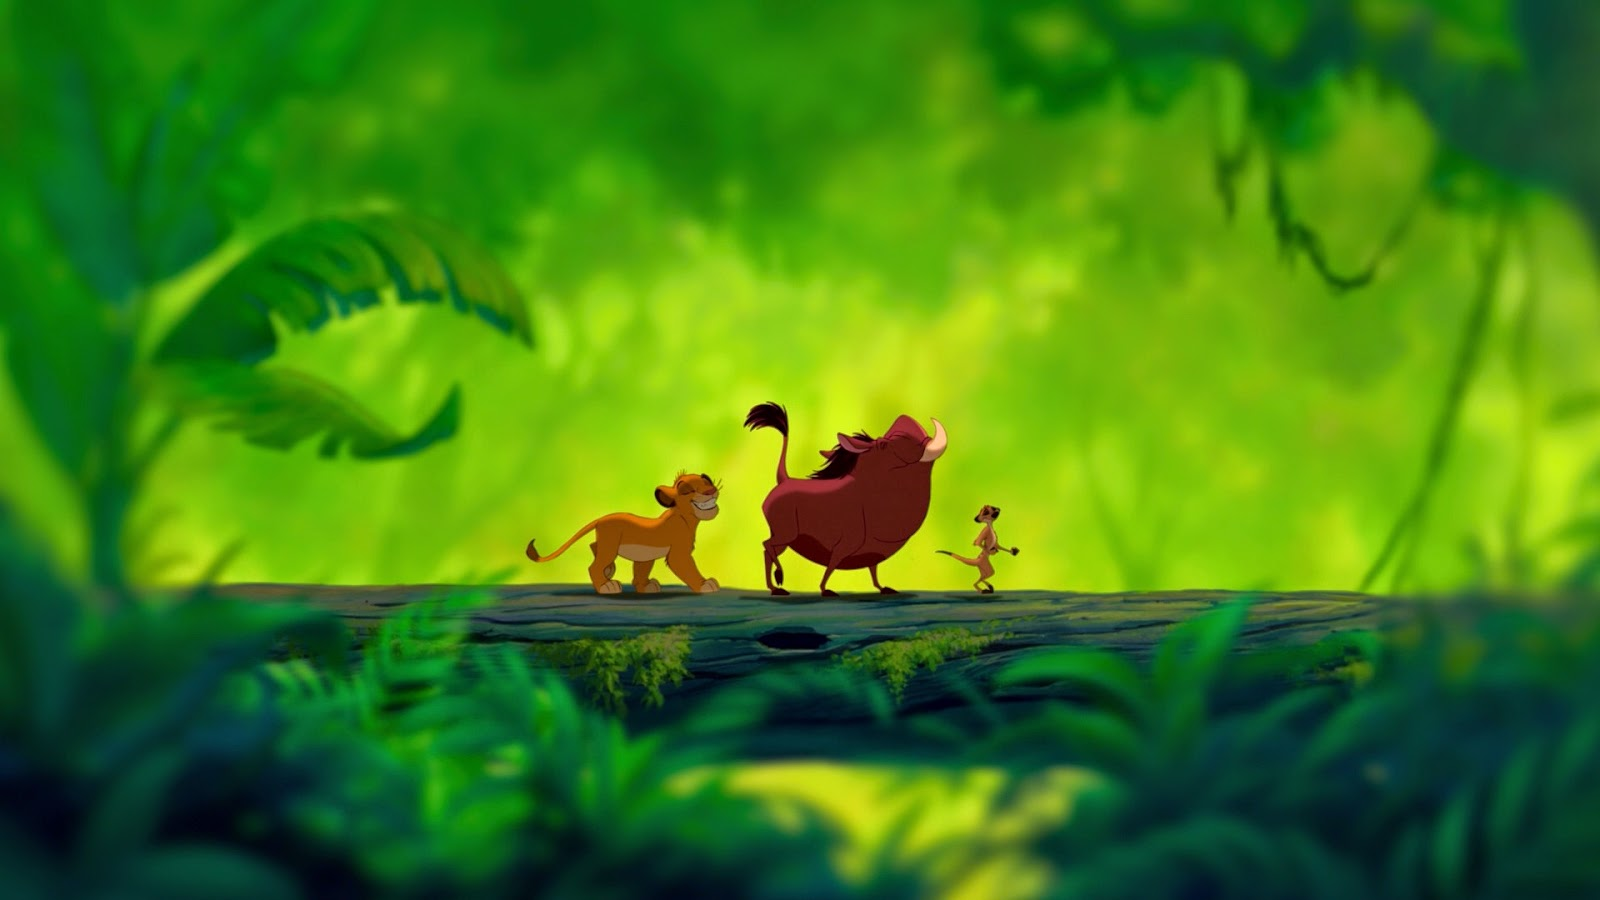 Lion king wallpapers hd beautiful wallpapers collection 2018 - Lion king wallpaper ...